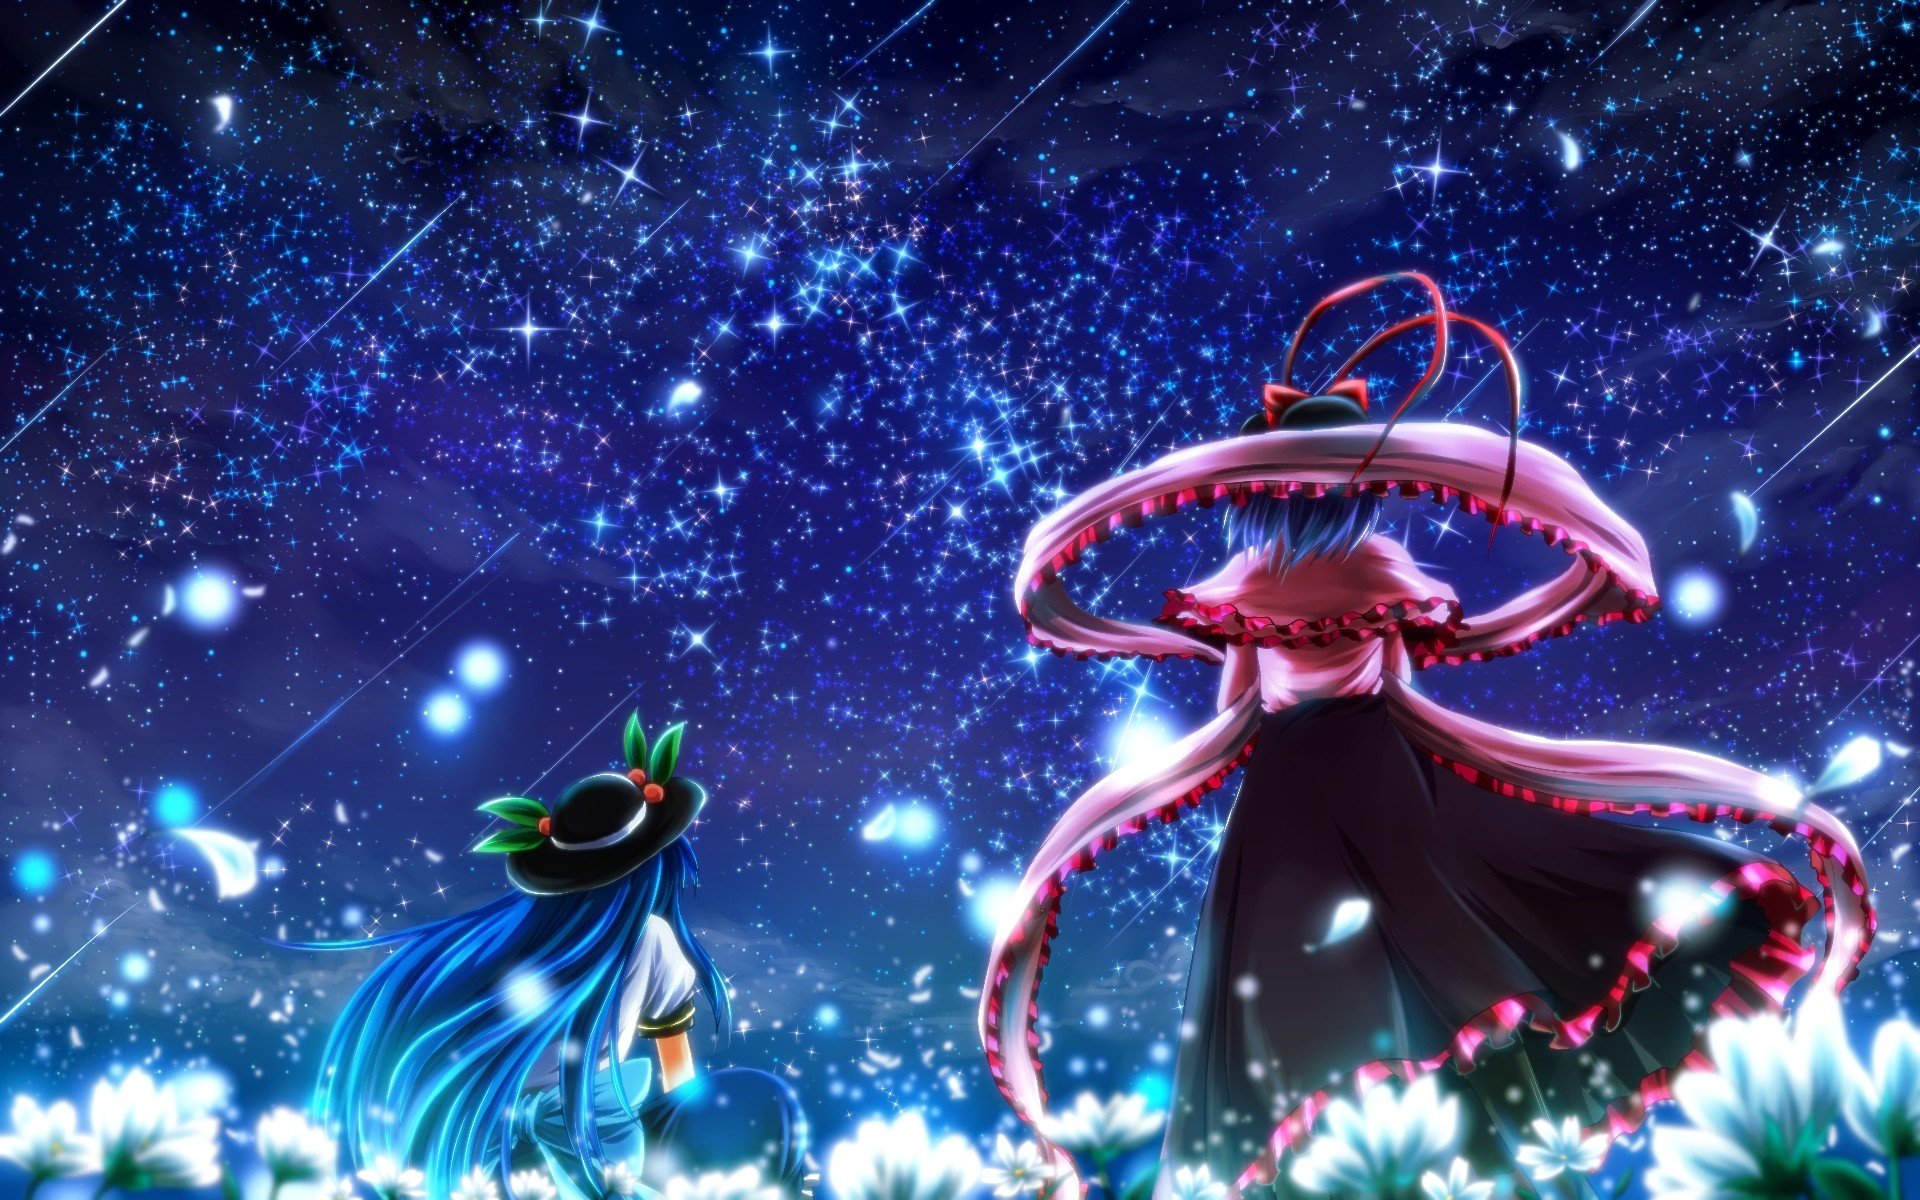 Amazing Touhou Wallpaper